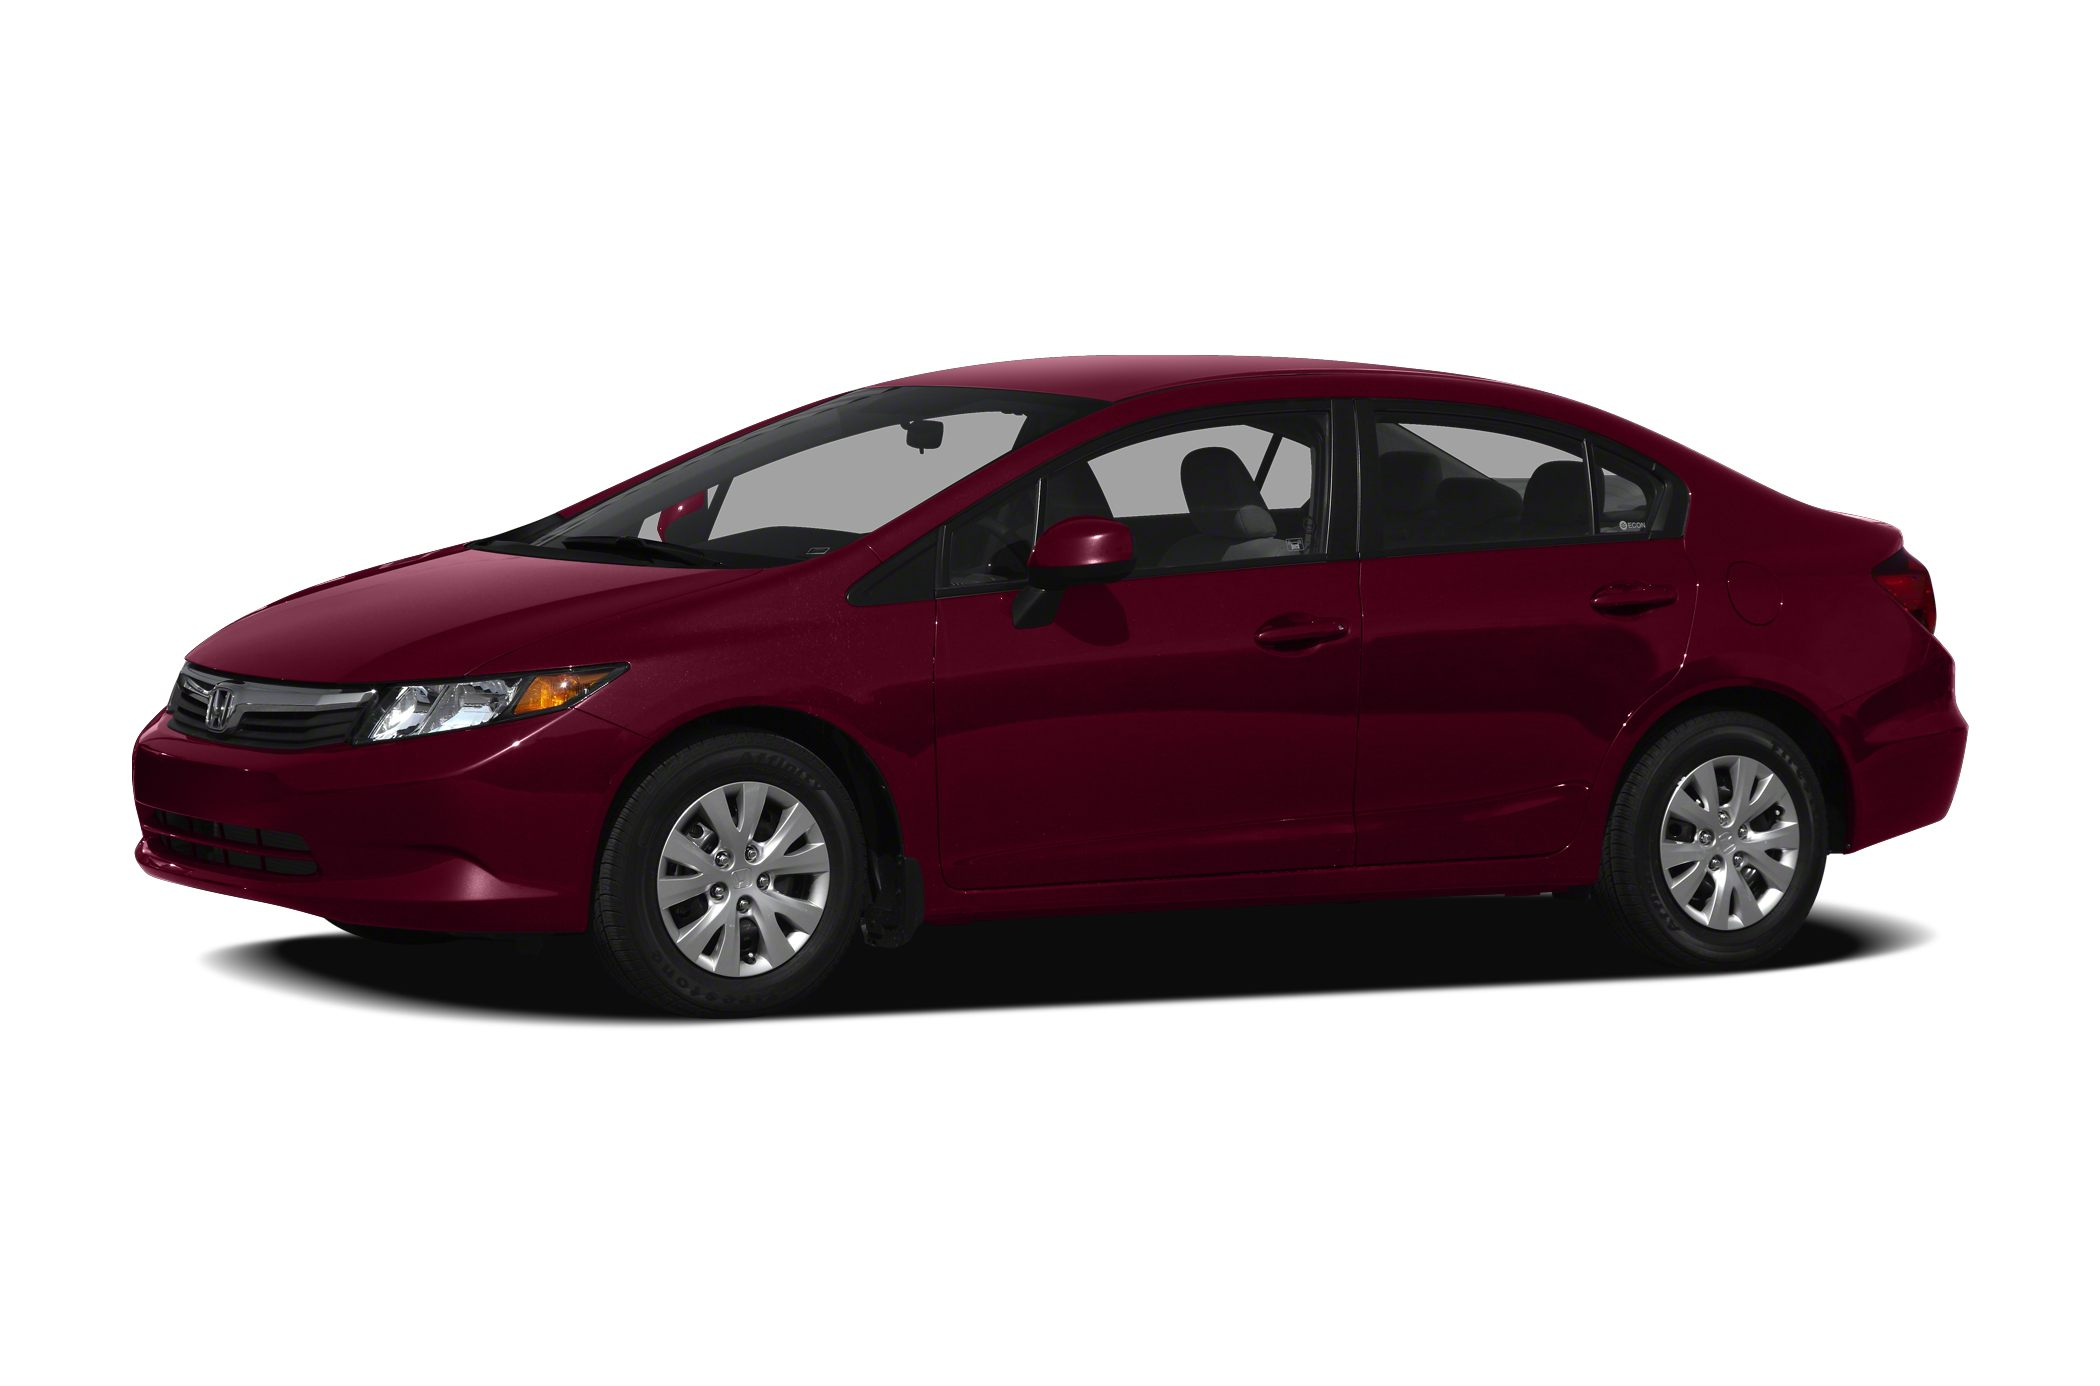 2012 Honda Civic LX Sedan for sale in Chicago for $13,995 with 45,096 miles.